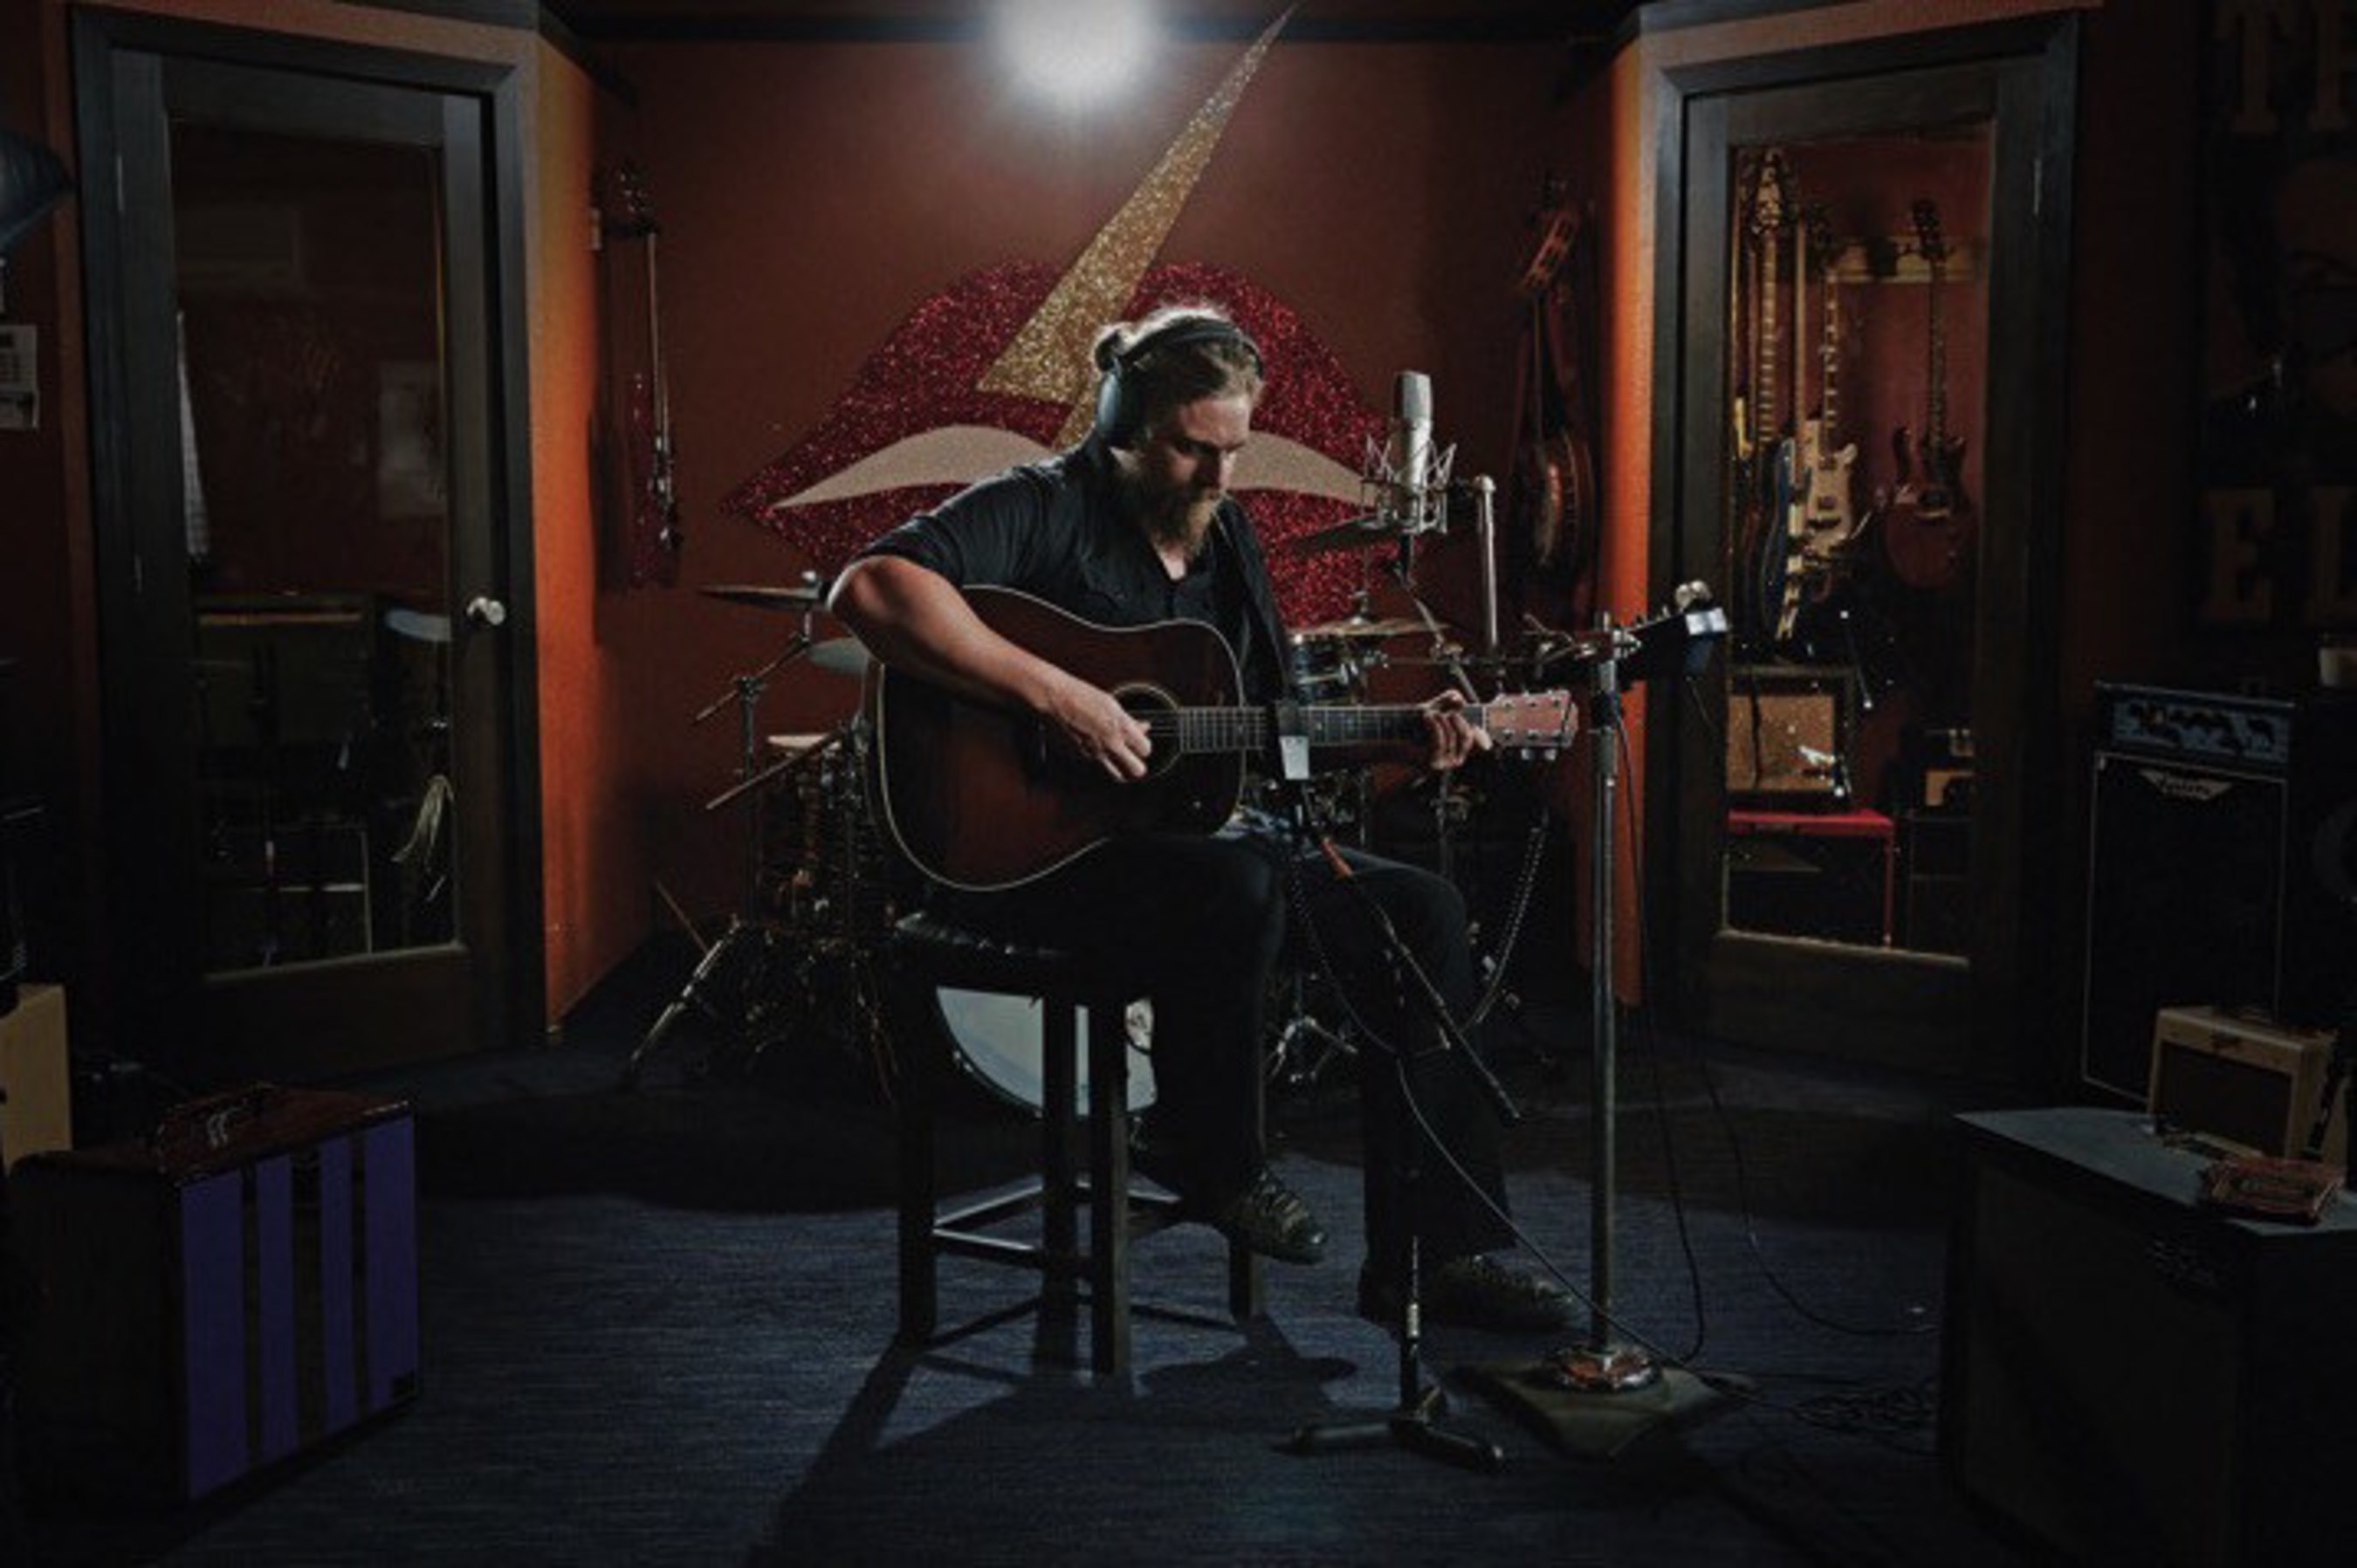 Ernie Ball Presents: Capturing The White Buffalo, the Recording of an American Songwriter